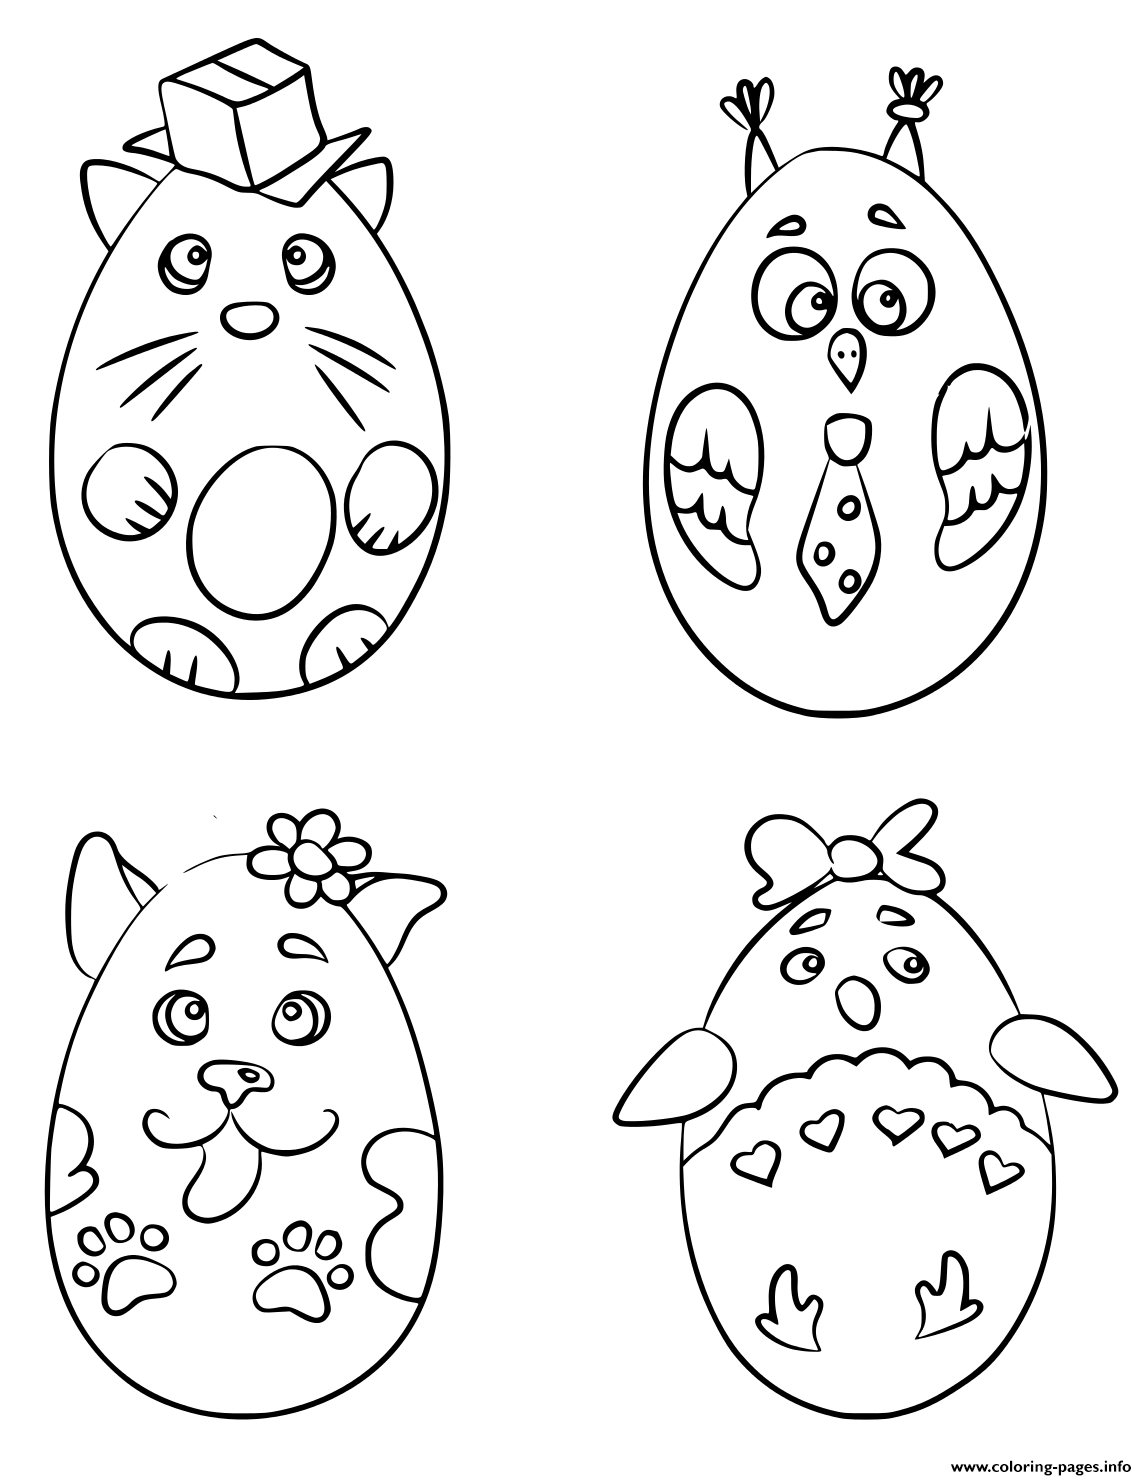 Animals Coloring Pages To Print Cute Animal Coloring Pages ... | 1480x1147